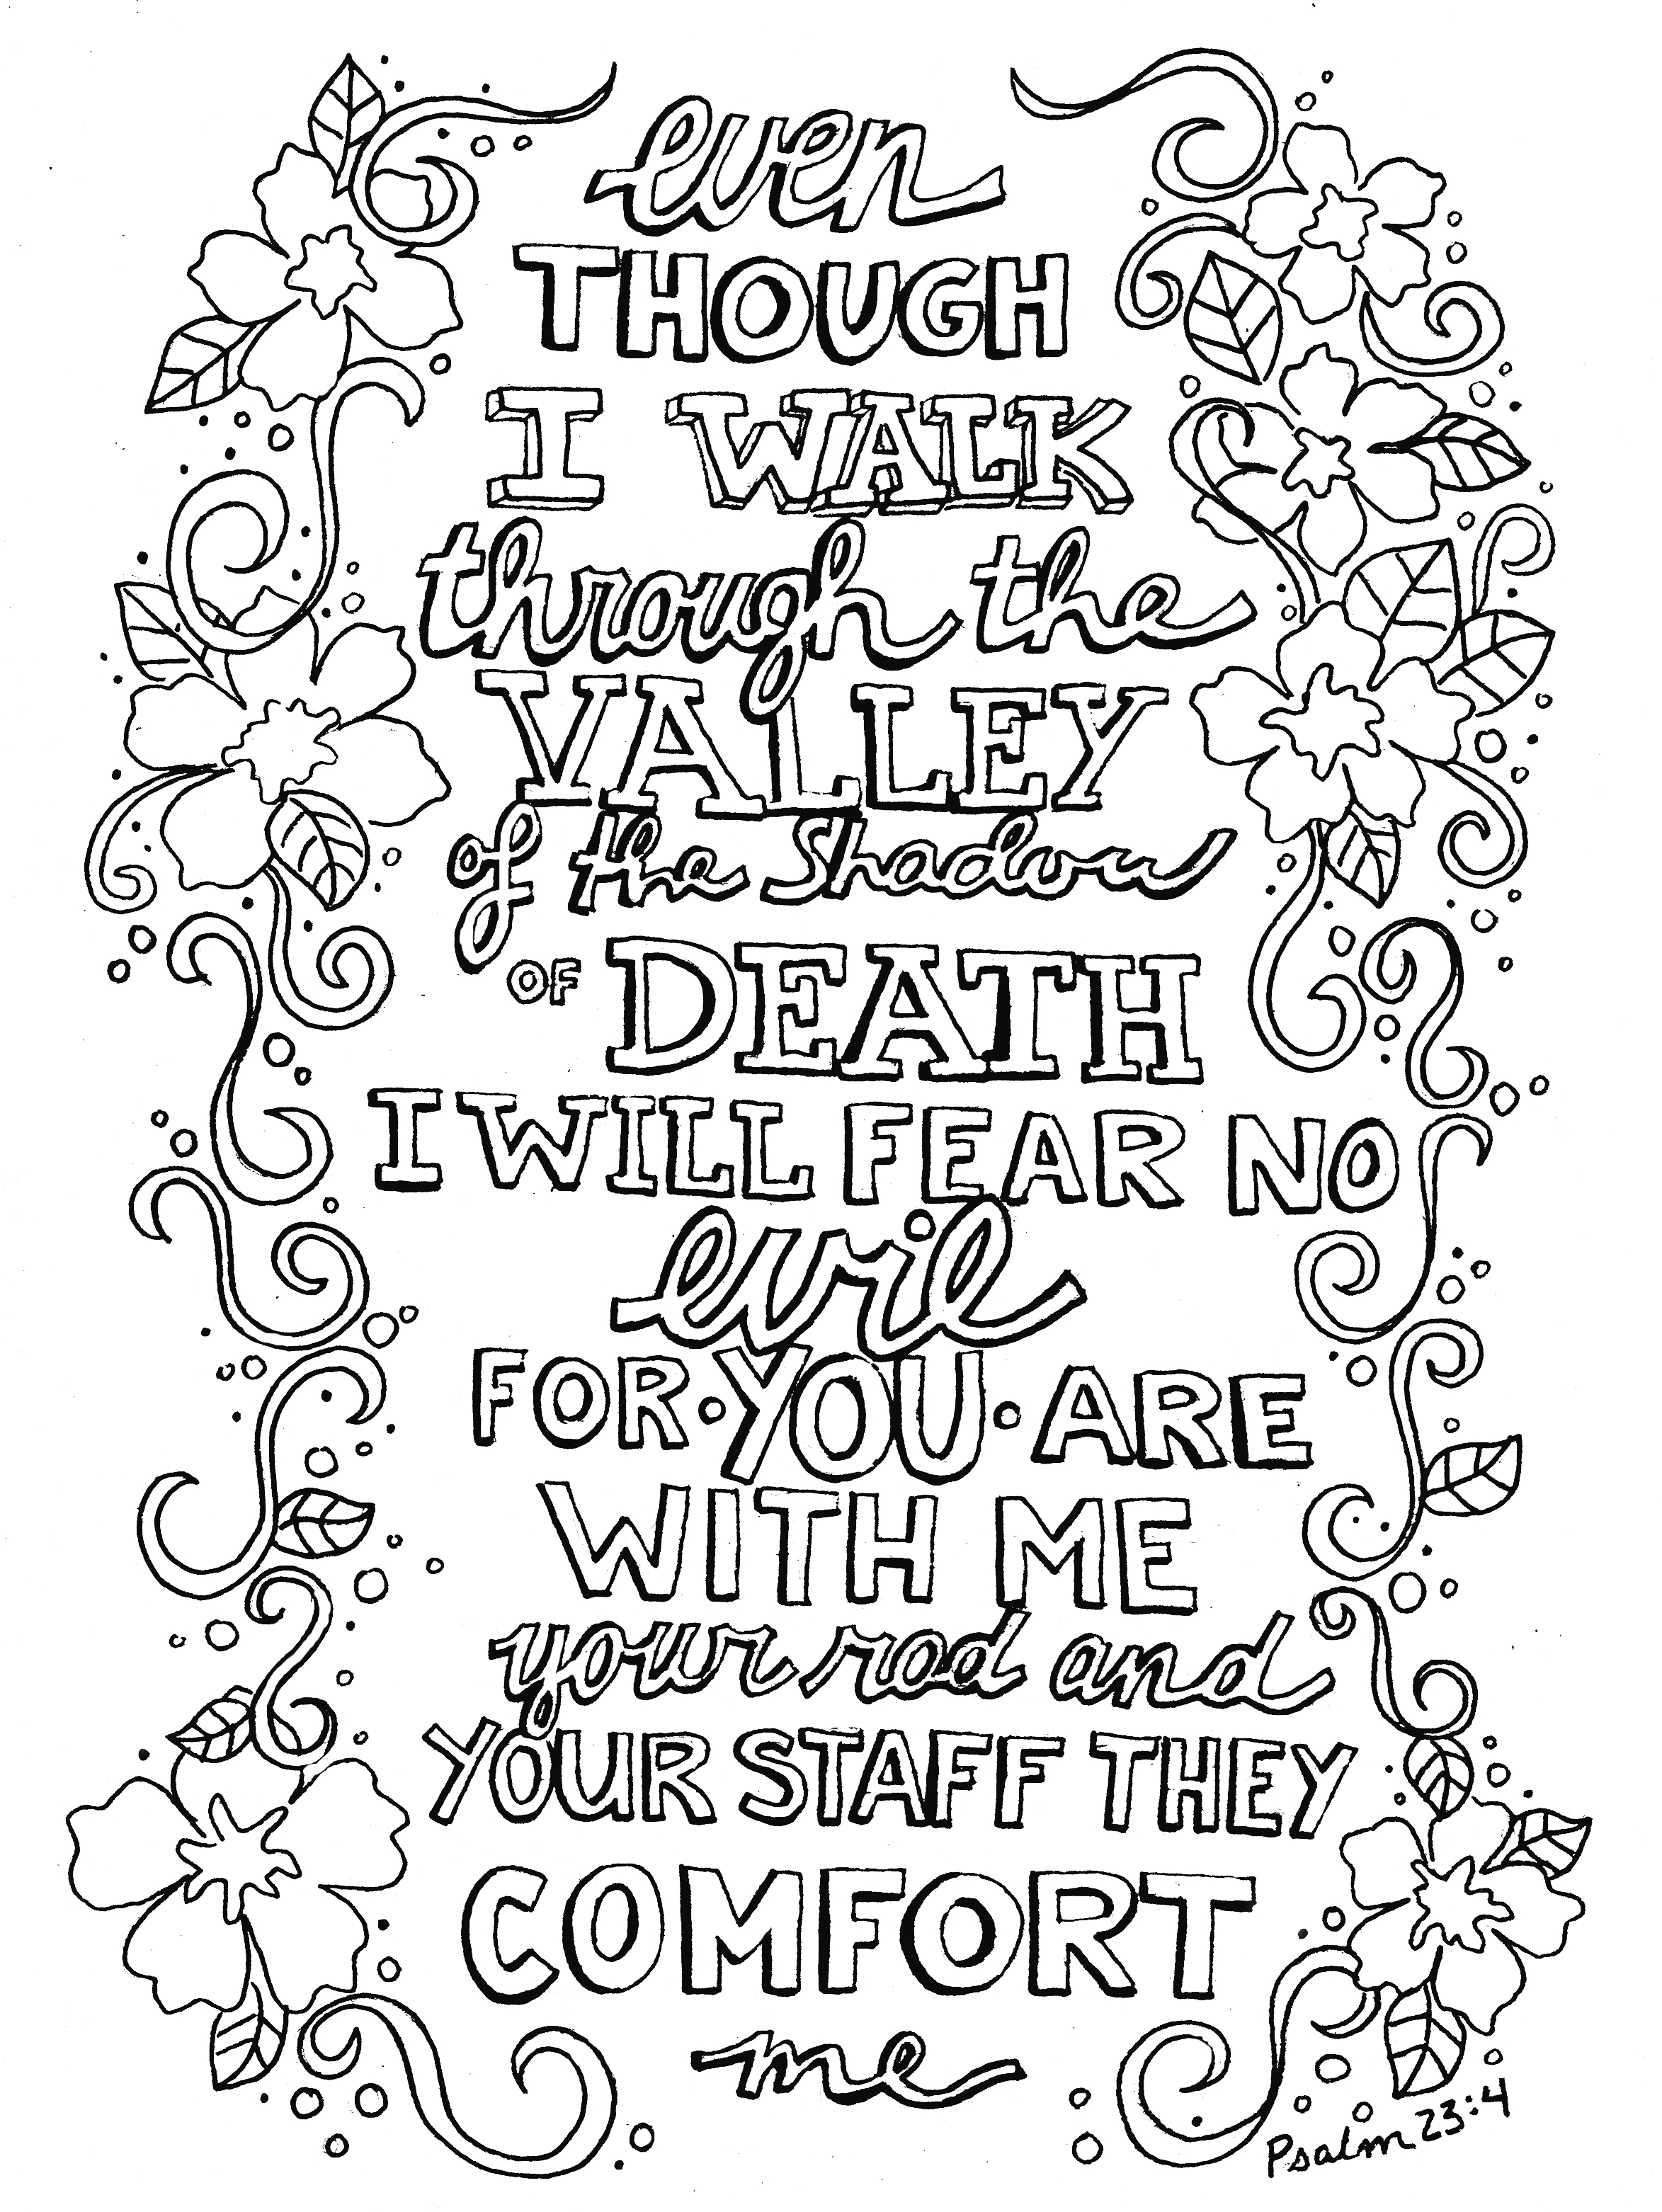 Attractive Love Poem Coloring Pages for Adults 4642 Unknown Download Of Free Printable Adult Coloring Pages Hymns & Scripture Our Printable